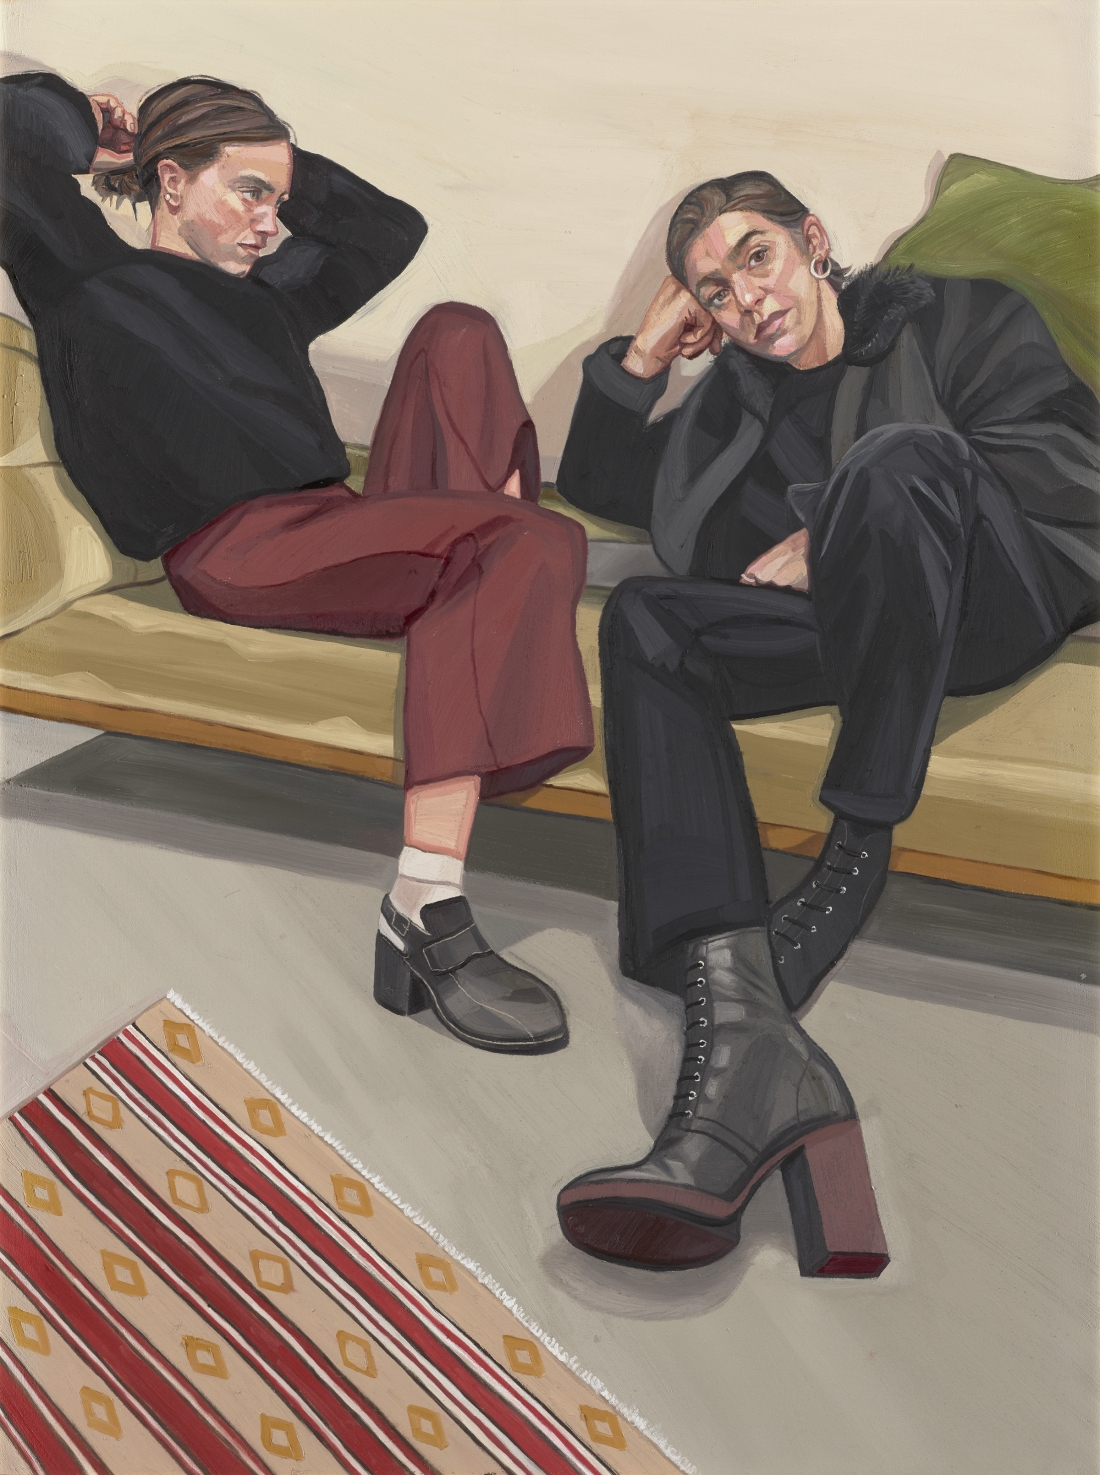 A Portrait of two Female Painters by Ania Hobson © Ania Hobson